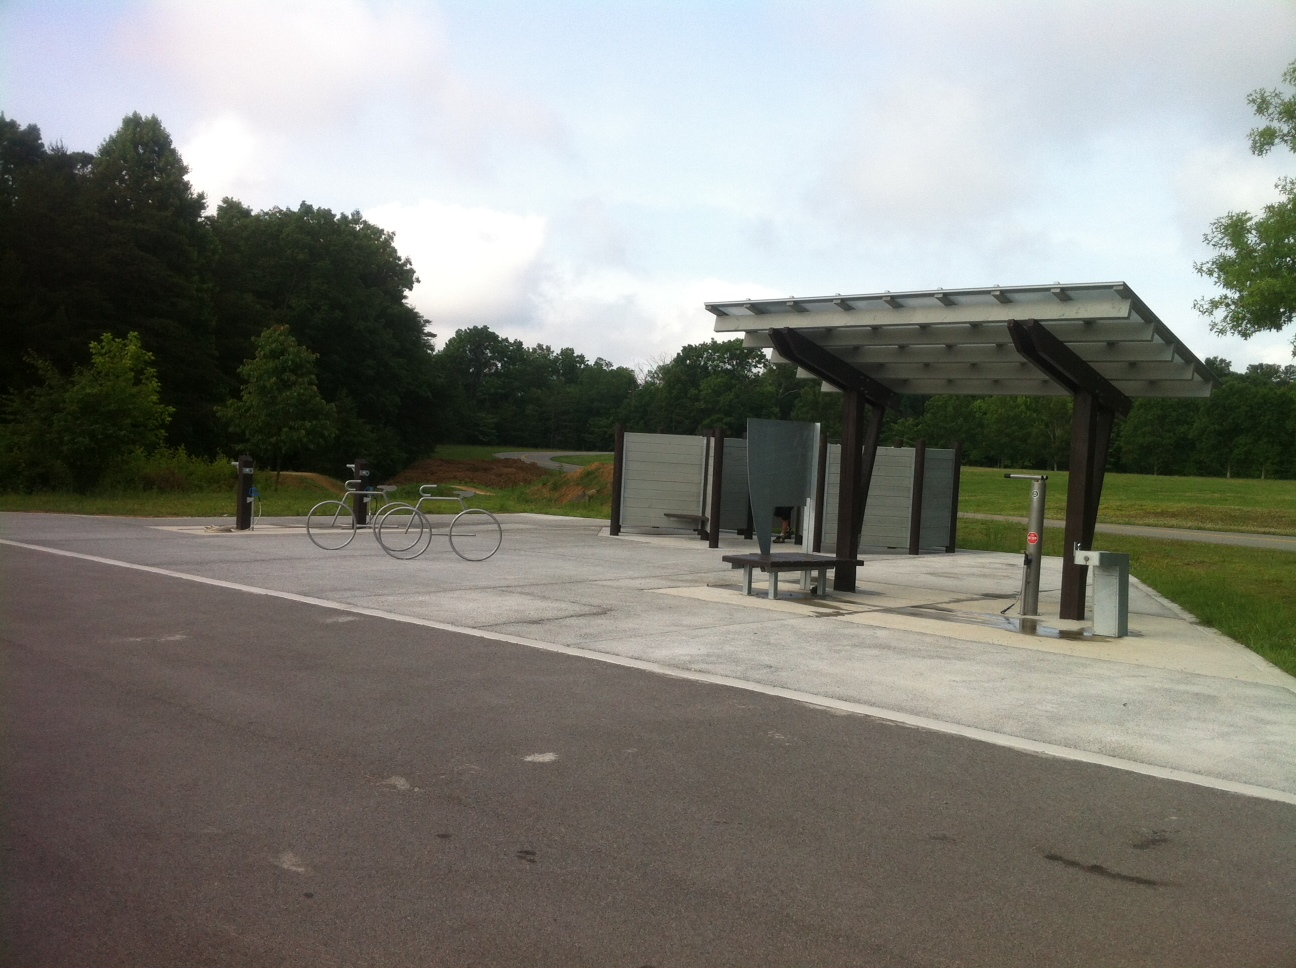 Bike wash stands, bike repair stands, and changing areas make Laurel Point a convenient place to park.